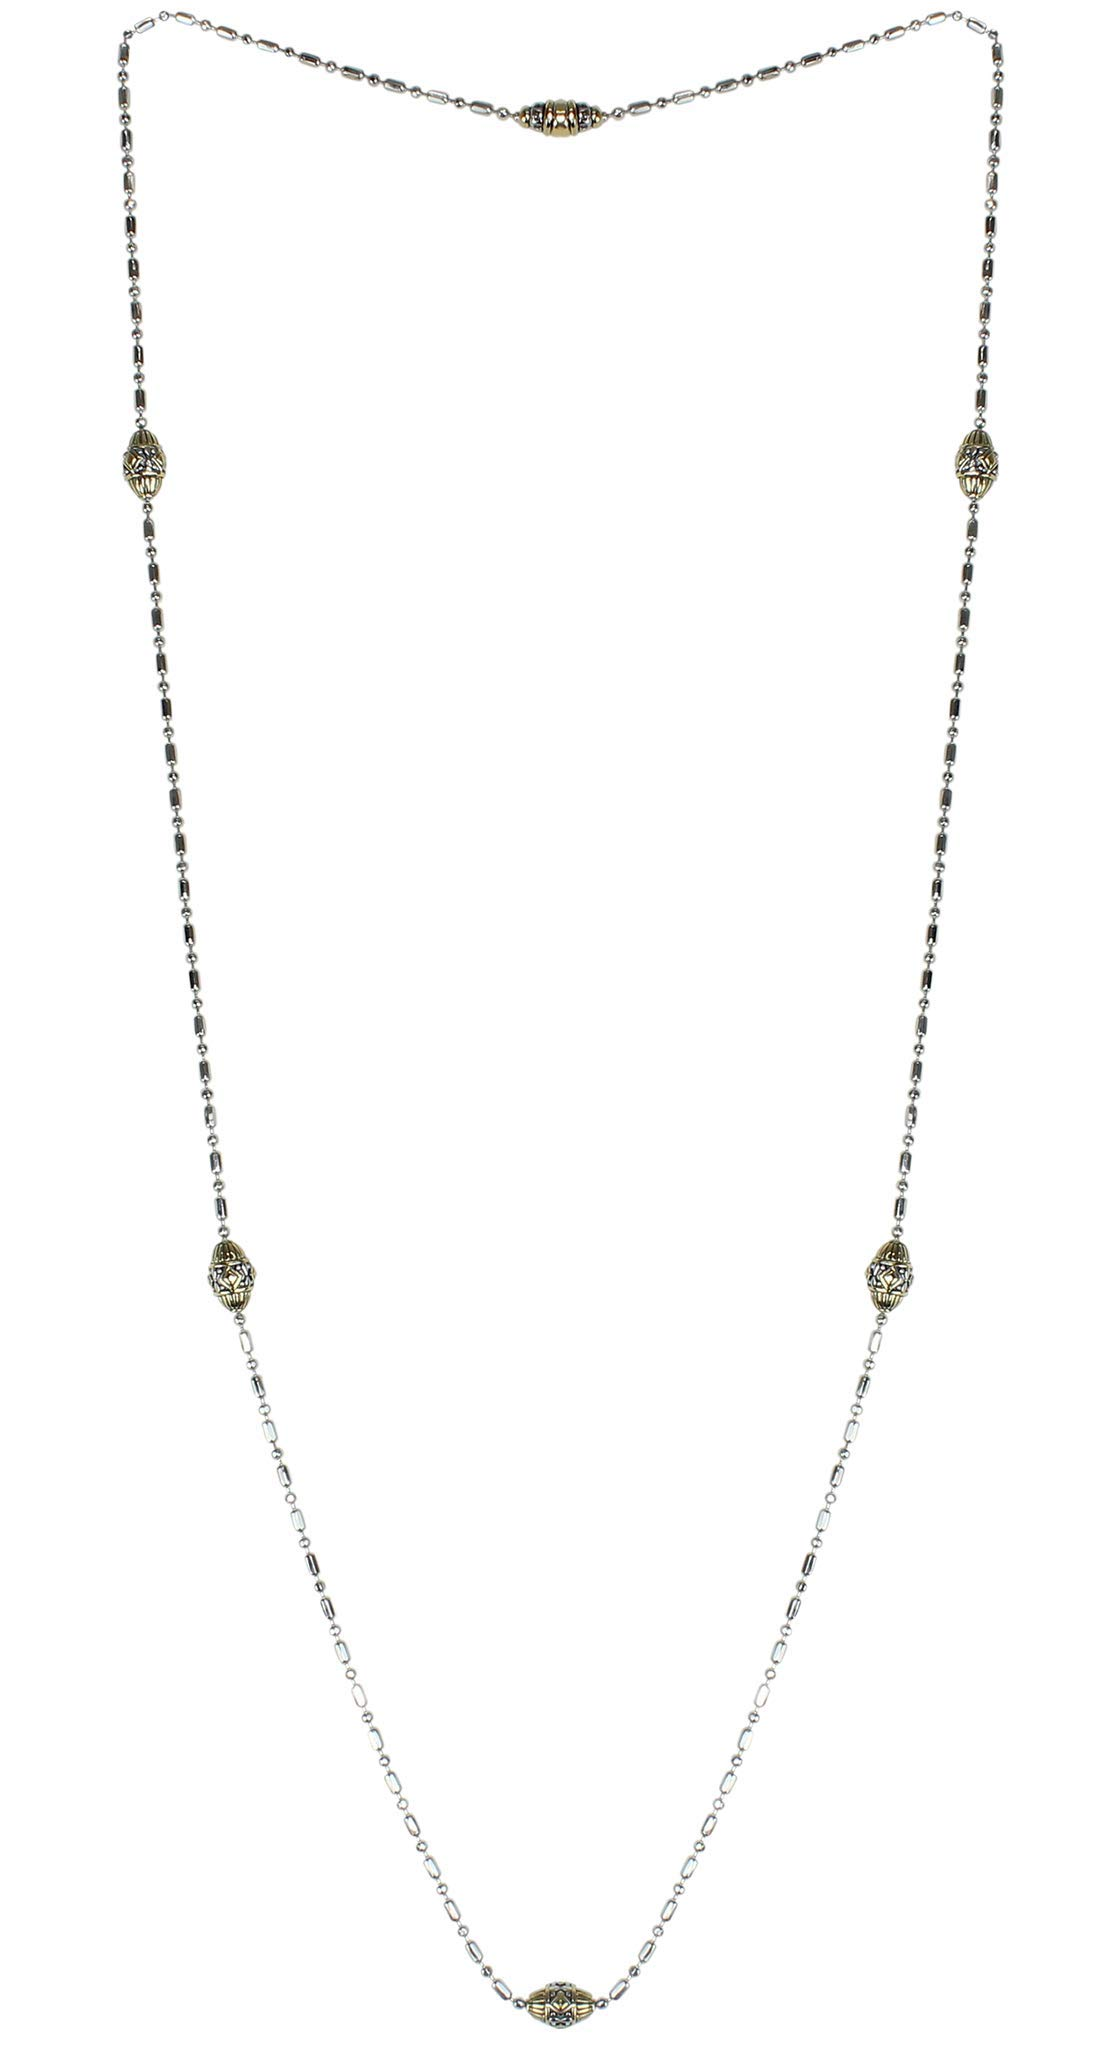 John Medeiros Gold and Silver Tone Long Strand 38'' Necklace with Handcrafted Charms Made in America by John Medeiros (Image #2)